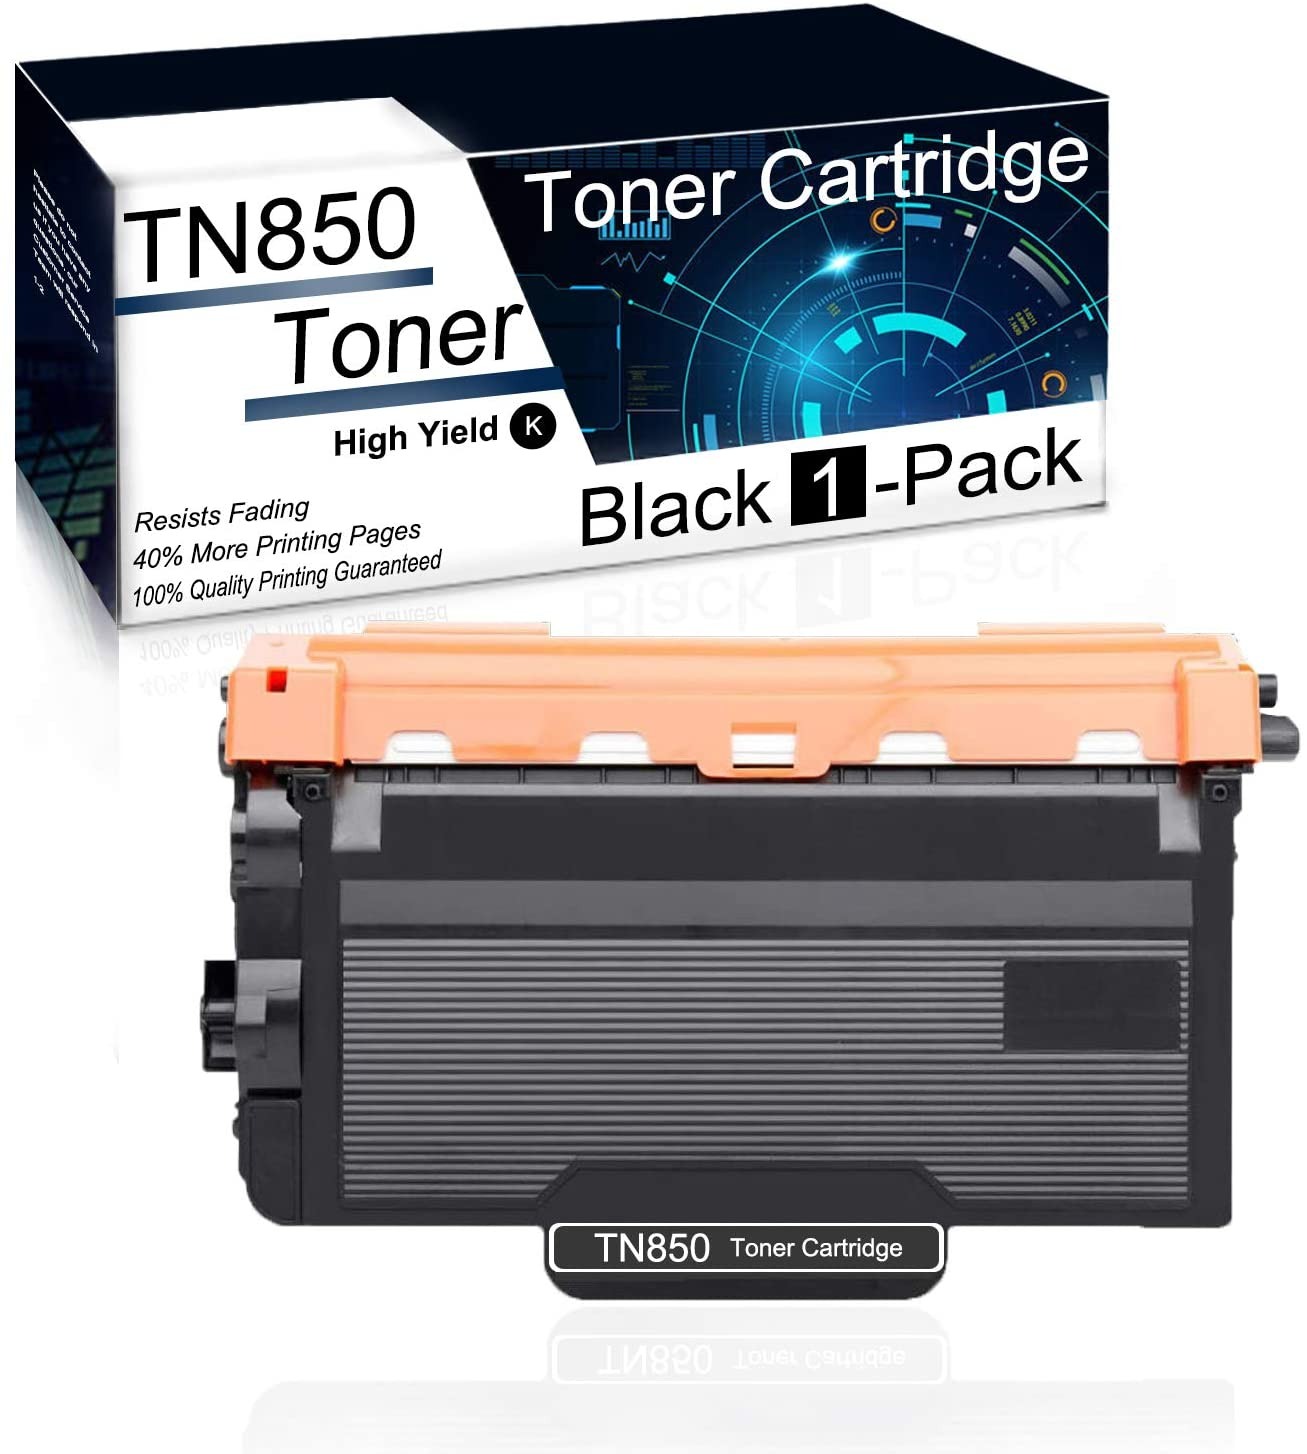 (1Pk,Black) Compatible TN850 Toner Cartridge Used for Brother HL-L5000D HL-L5100DN HL-L6300DW DCP-L5500DN DCP-L5650DN DCP-L5600DN MFC-L6700DW MFC-L6750DW MFC-L5800DW Printer Toner Cartridge.